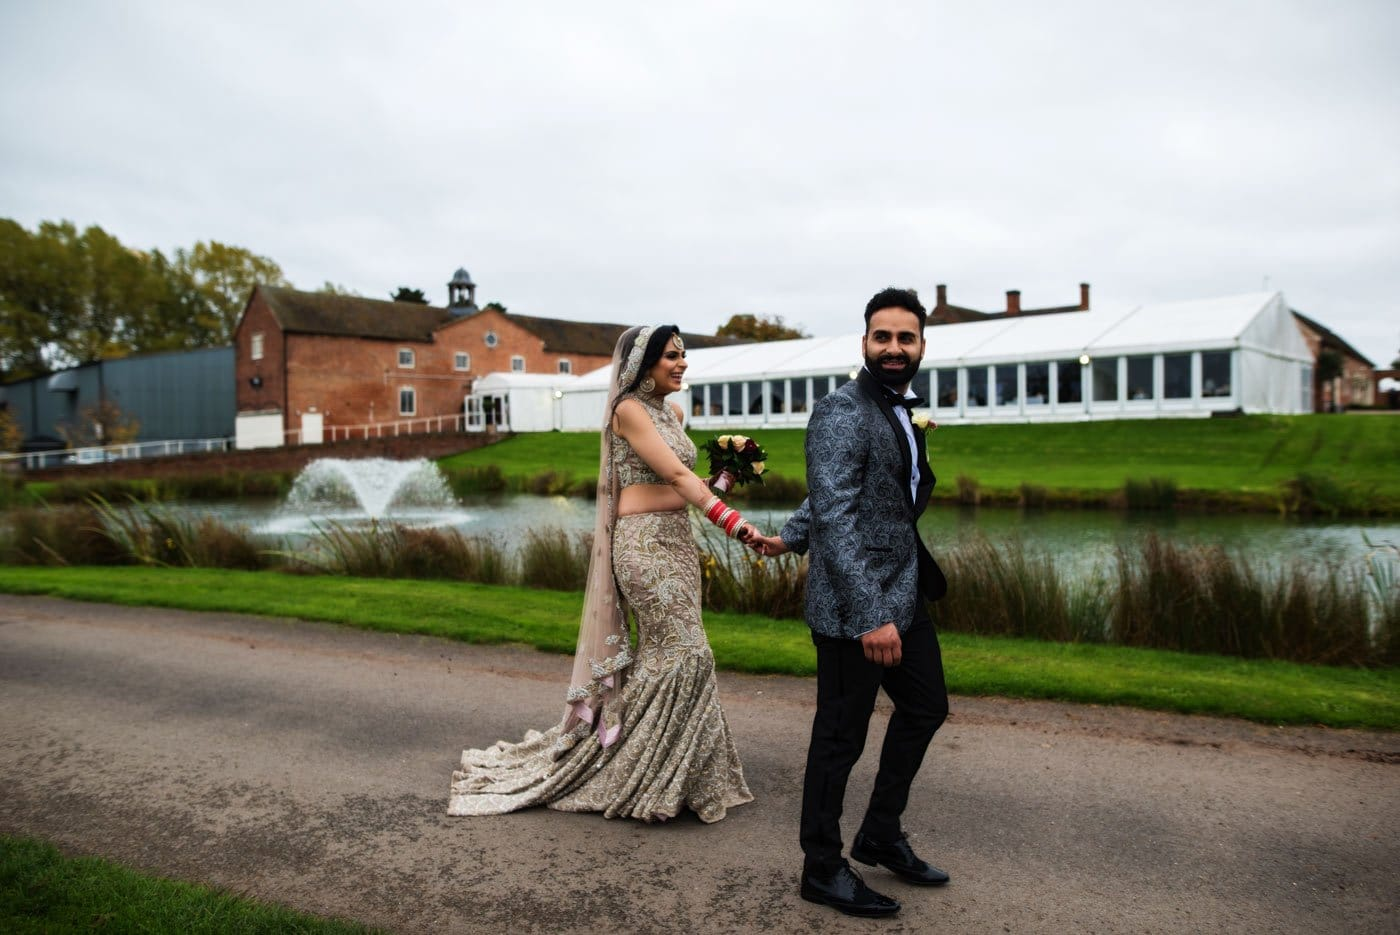 Hindu Wedding Photography at Alrewas Hayes // Ricky & Anu